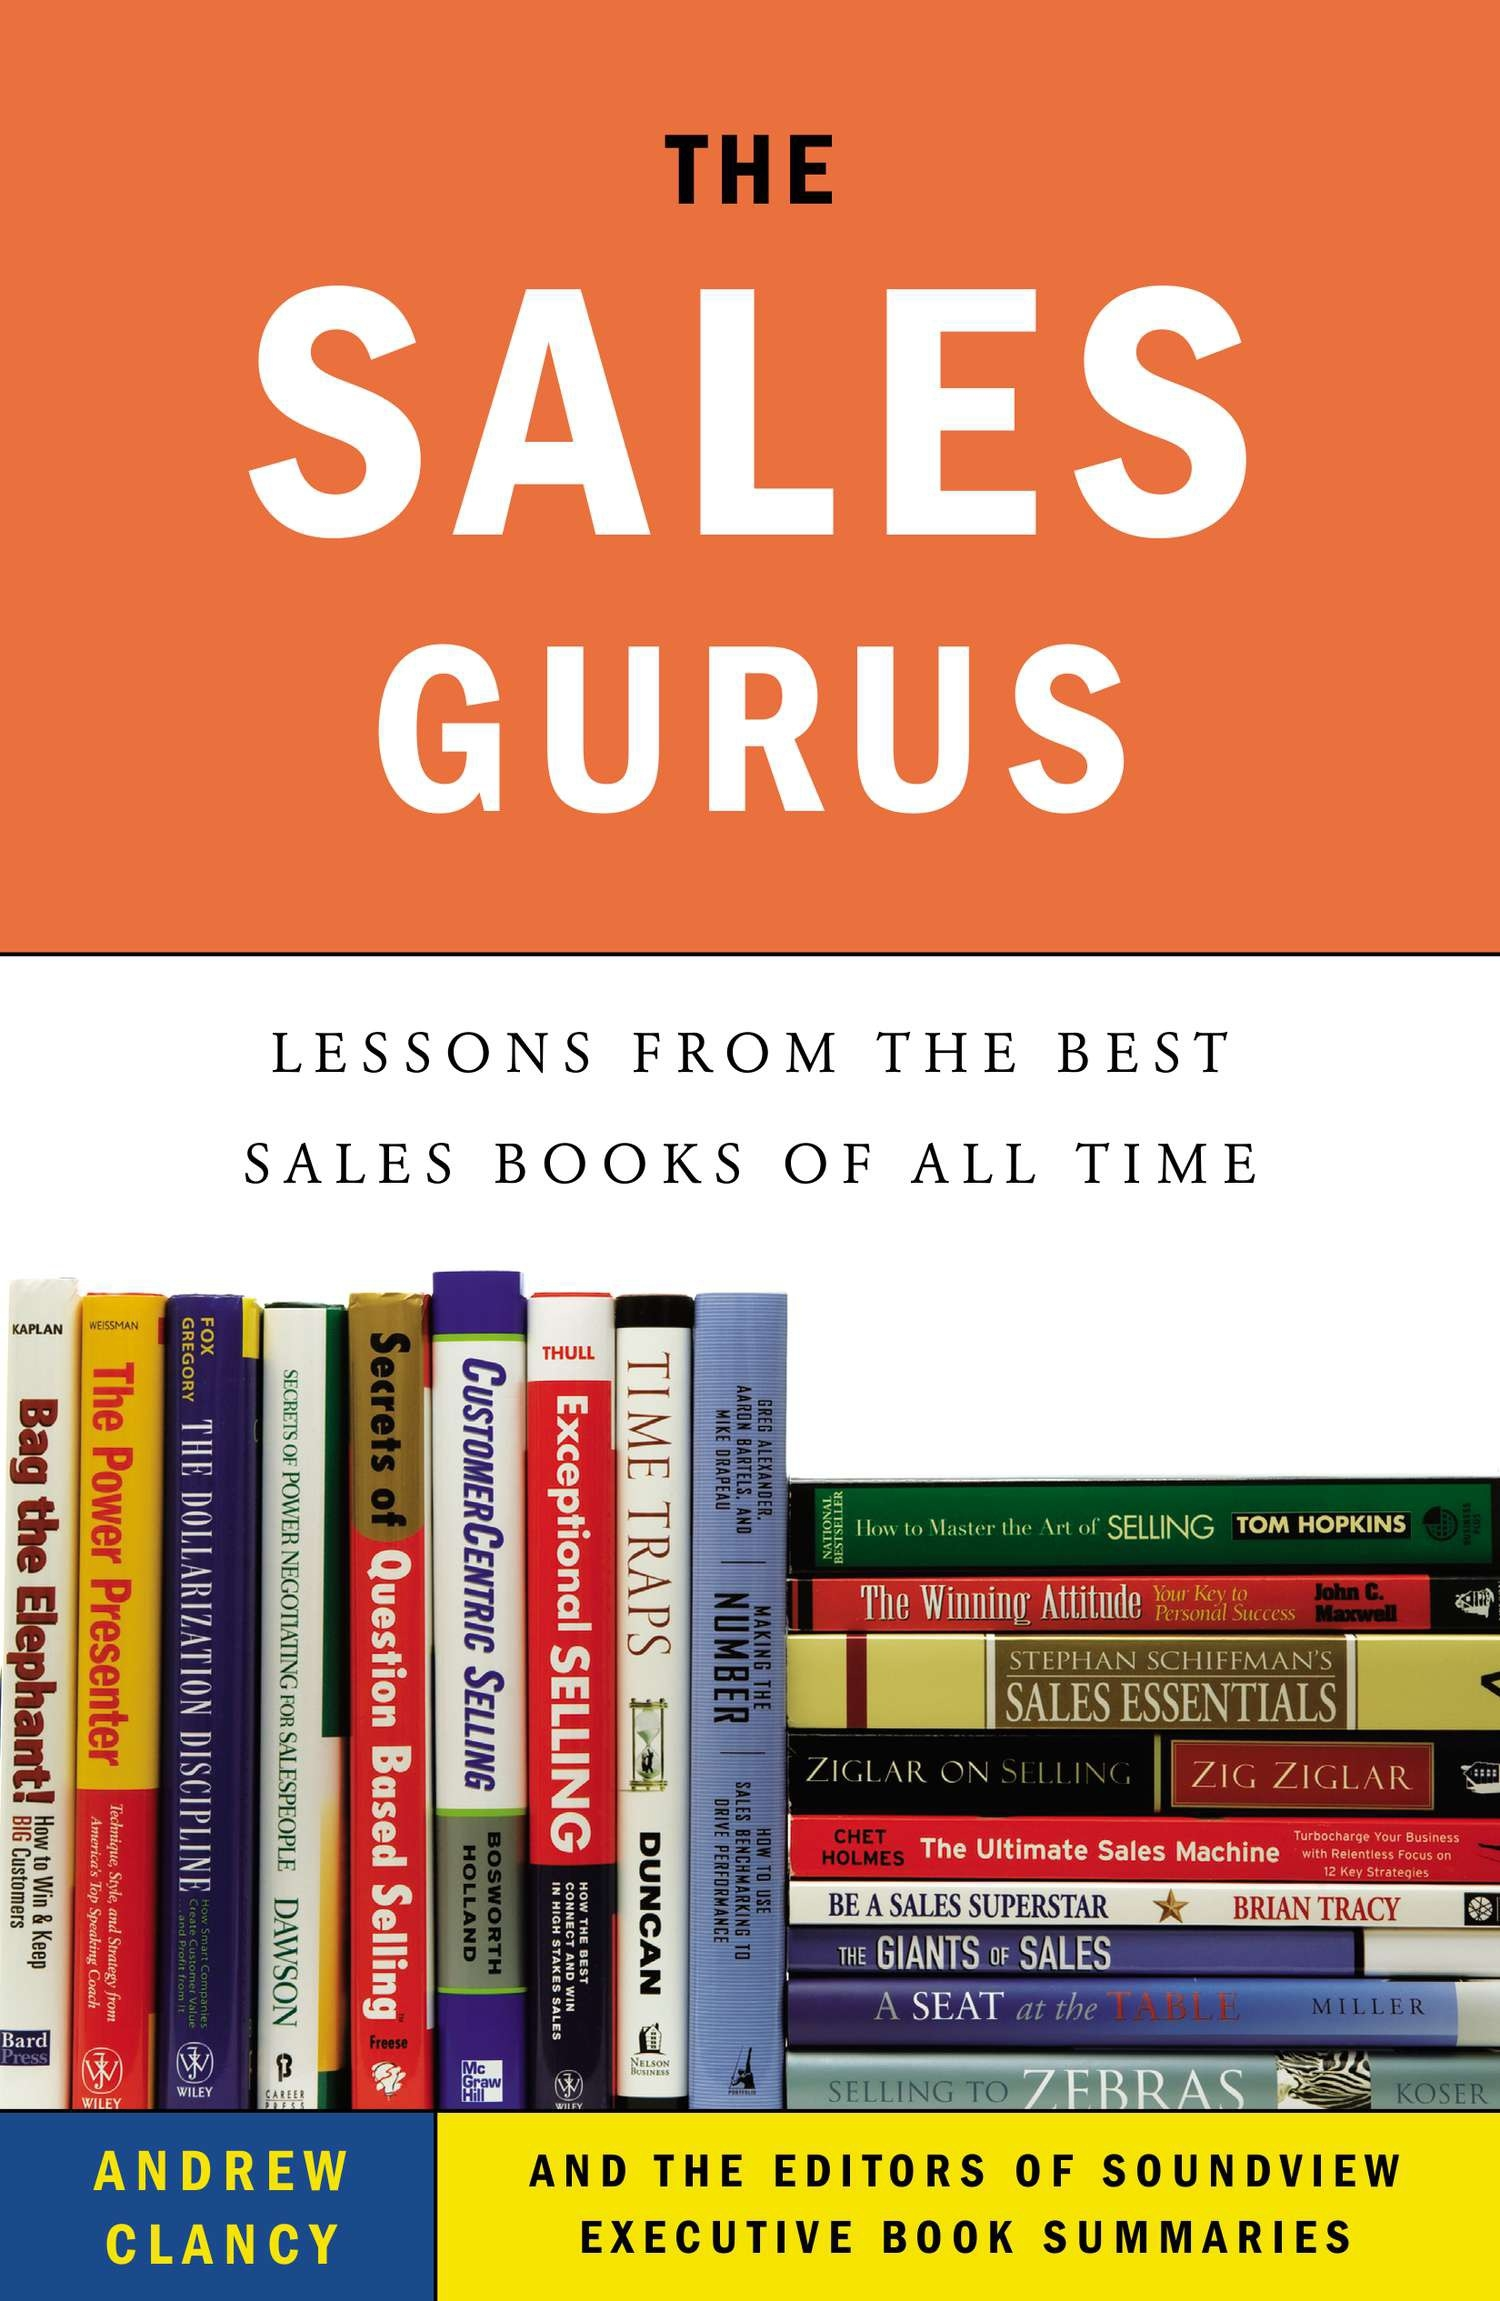 Best Book Cover All Time : The sales gurus lessons from best books of all